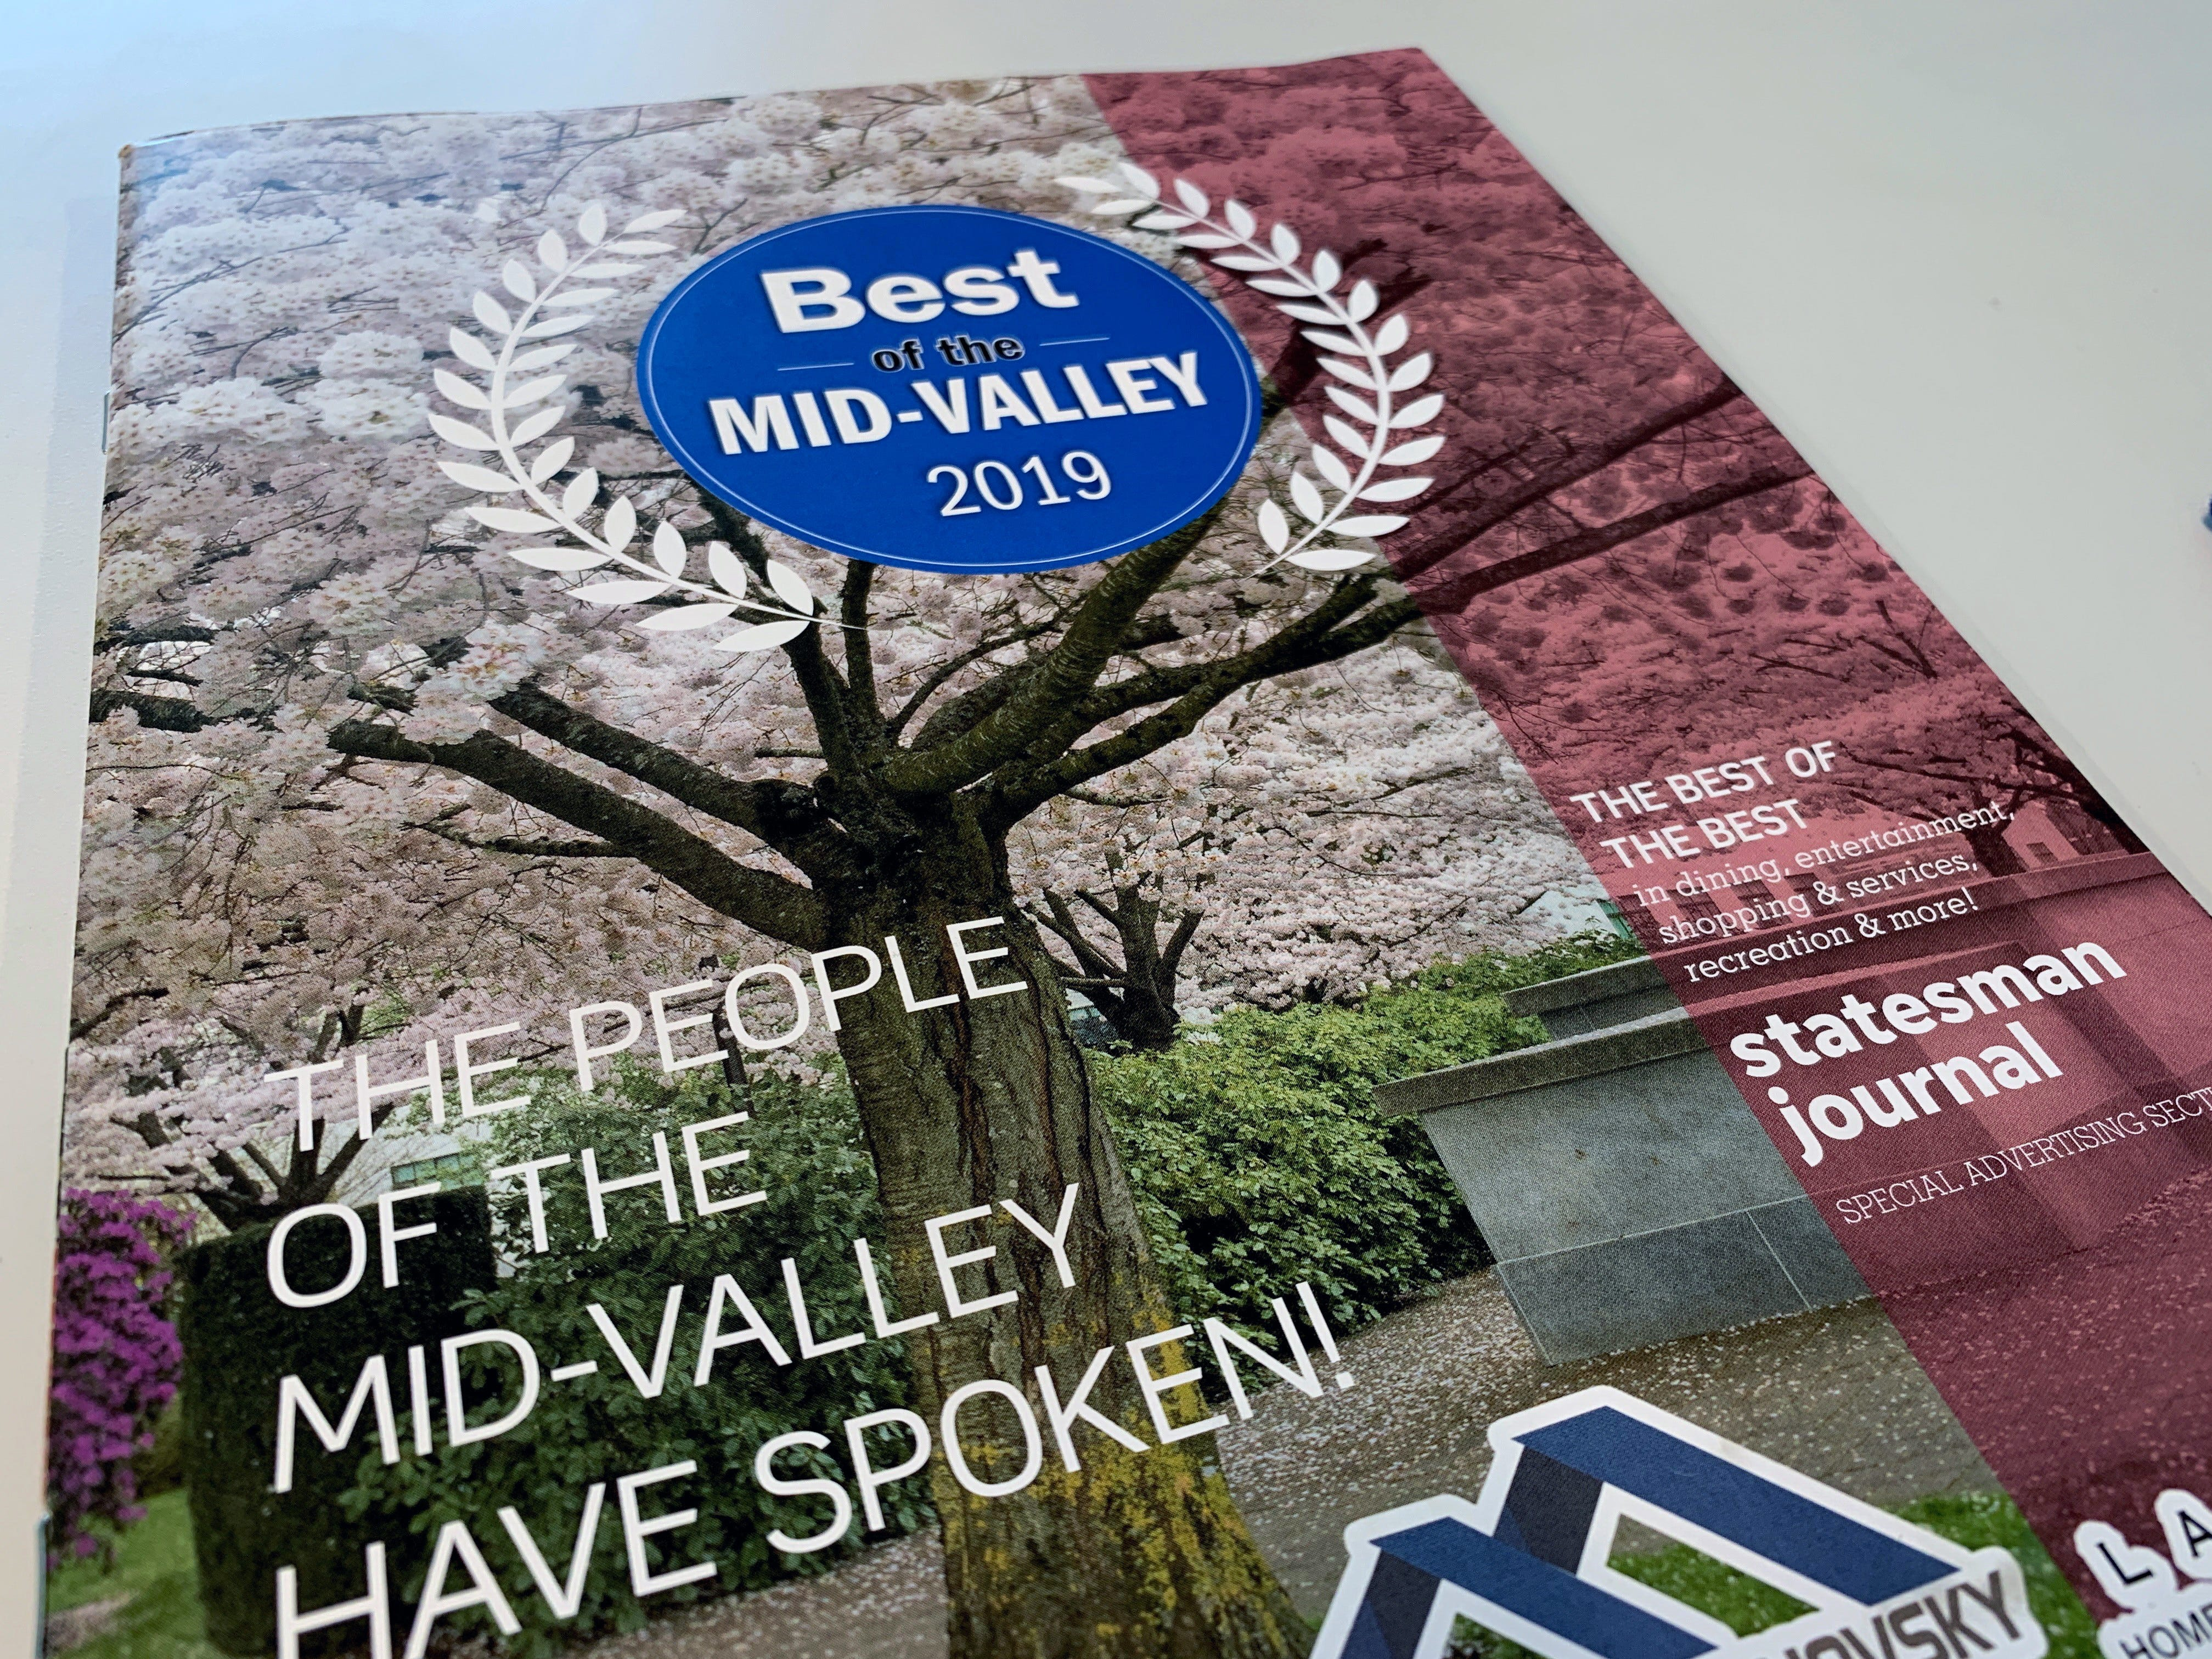 The votes are in and readers have made their choices for the 2019 Best of the Mid-Valley.